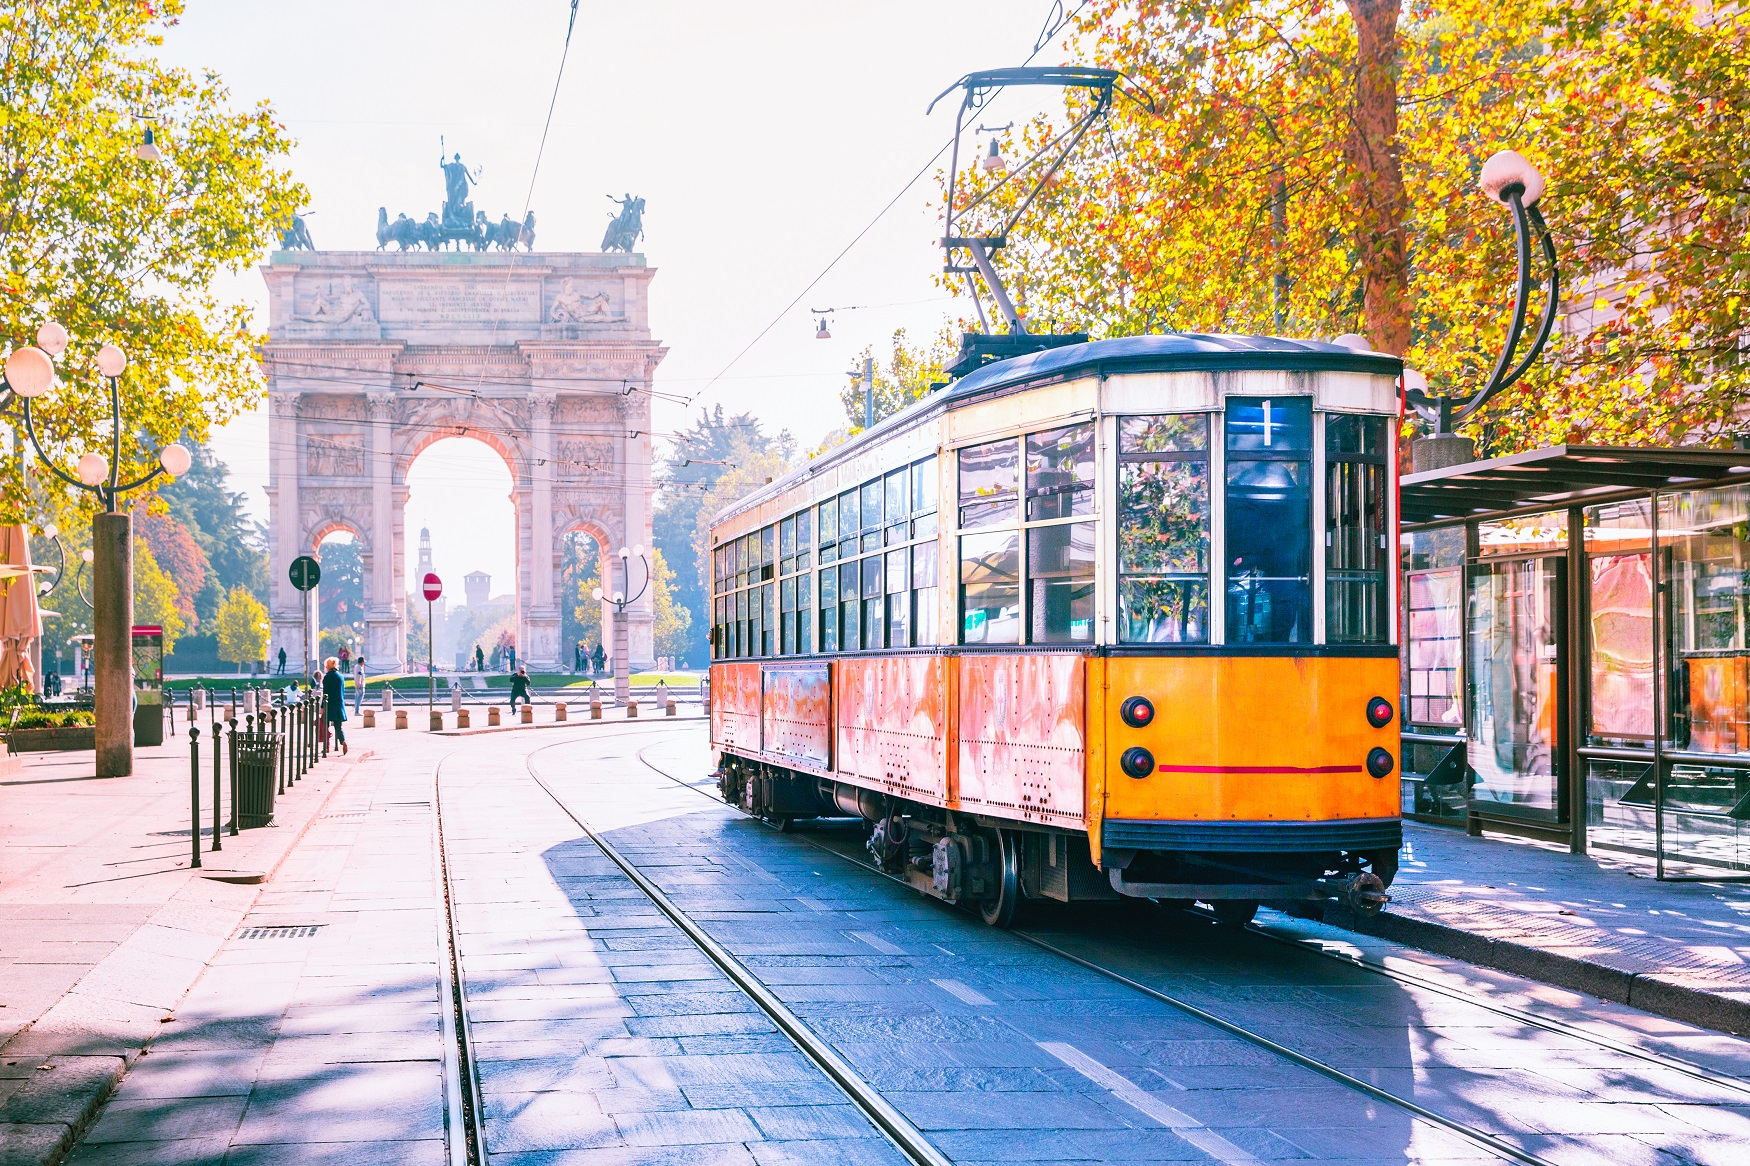 Photo of a tram in the sunshine in Milan